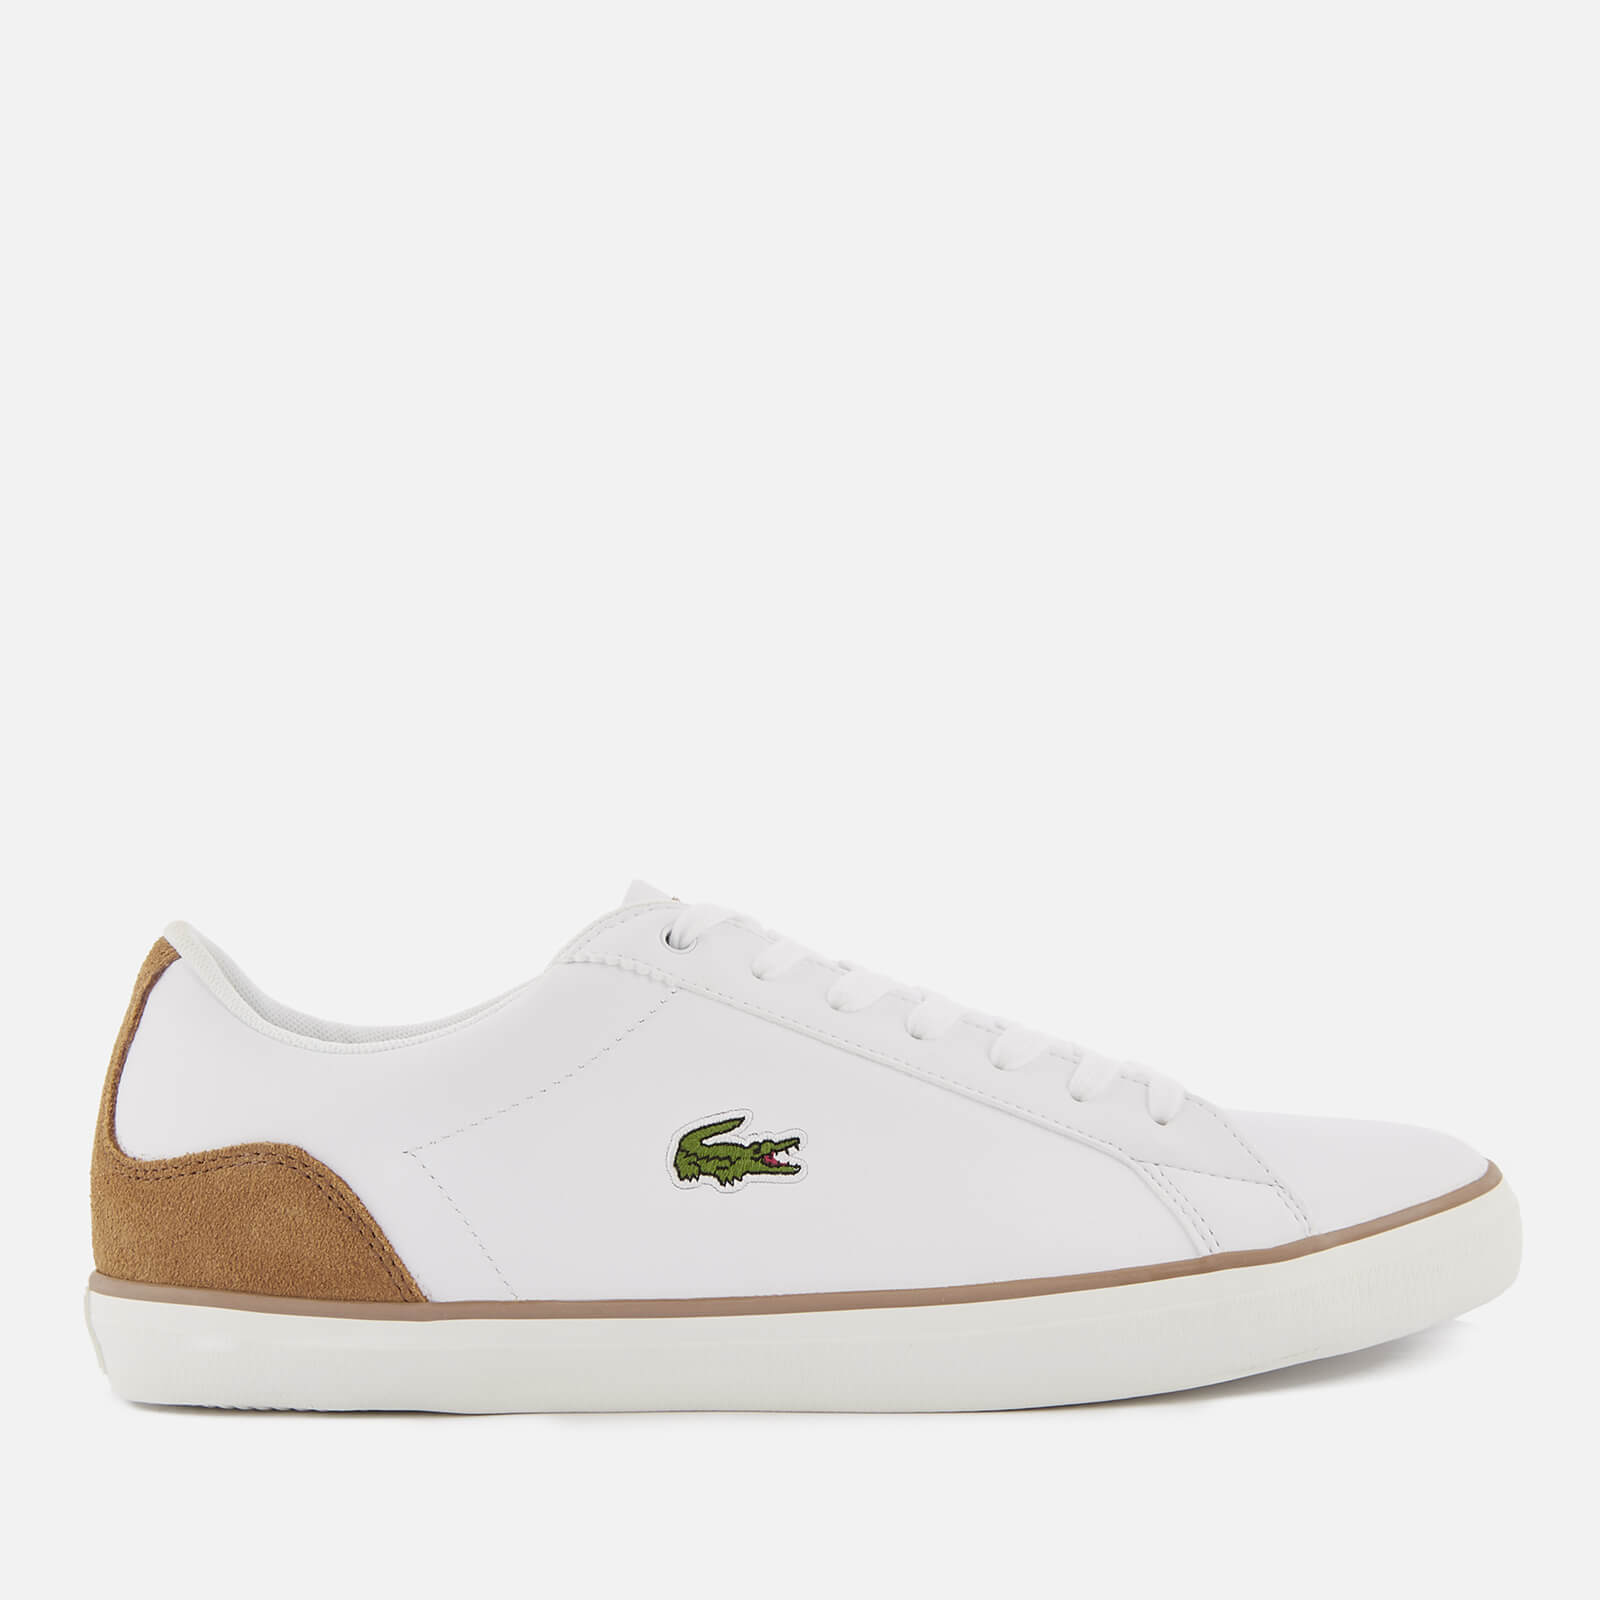 f540b87ec Lacoste Men s Lerond 118 1 Leather Trainers - White Light Brown Mens  Footwear